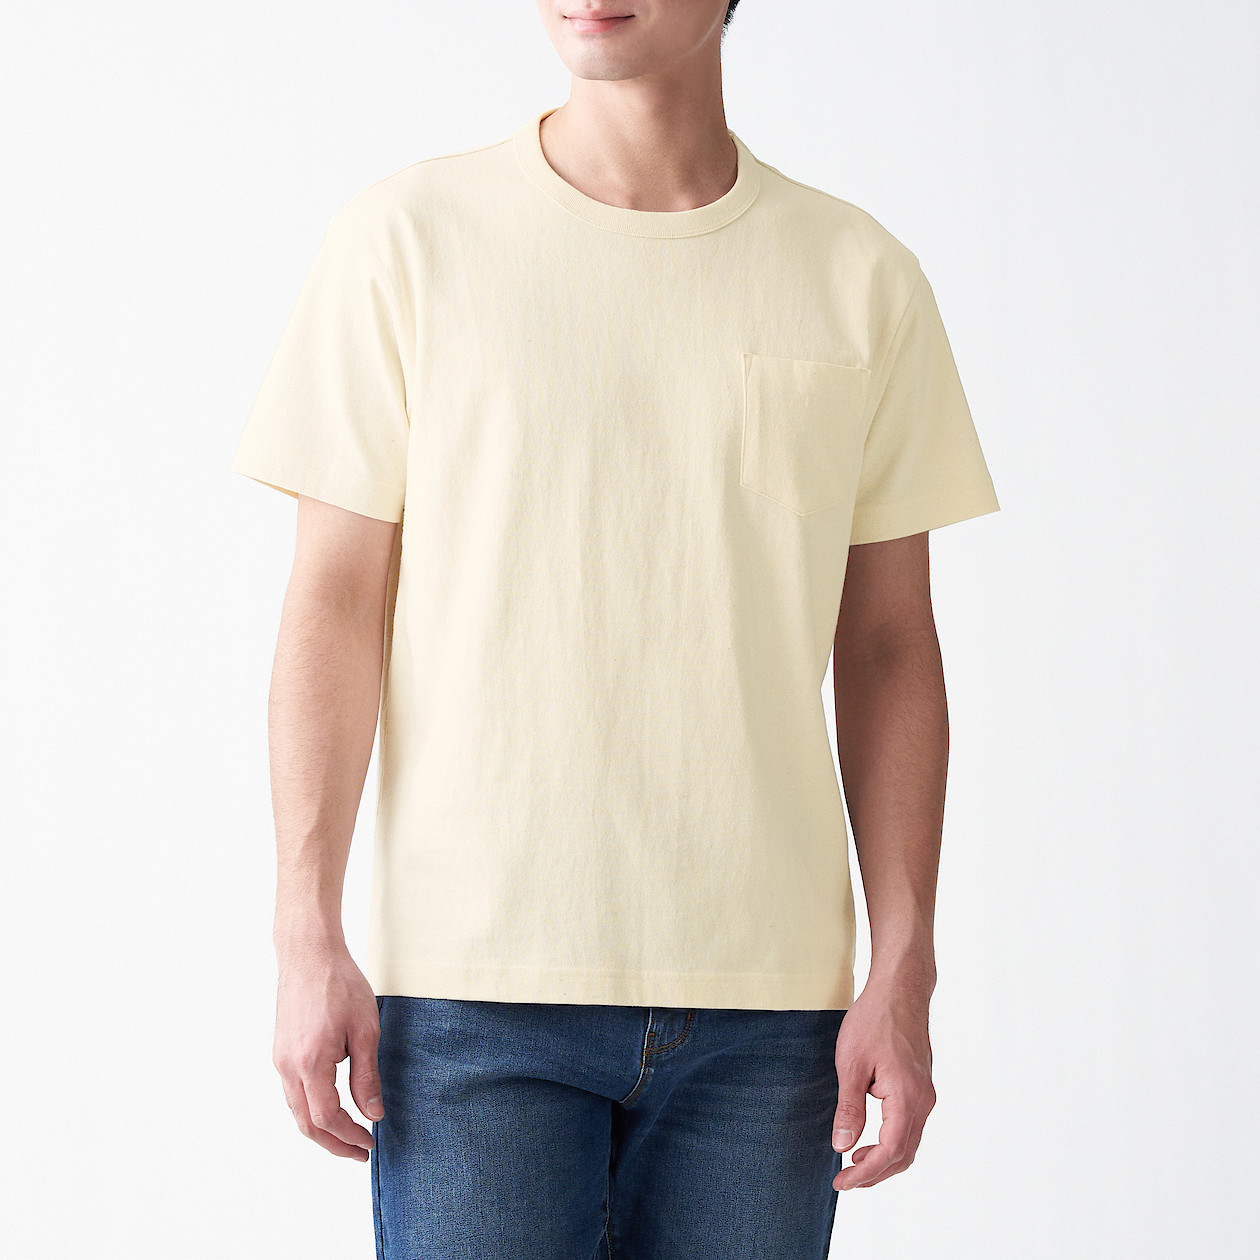 Men's Coarse Organic Cotton Short Sleeve T-Shirt With Pocket